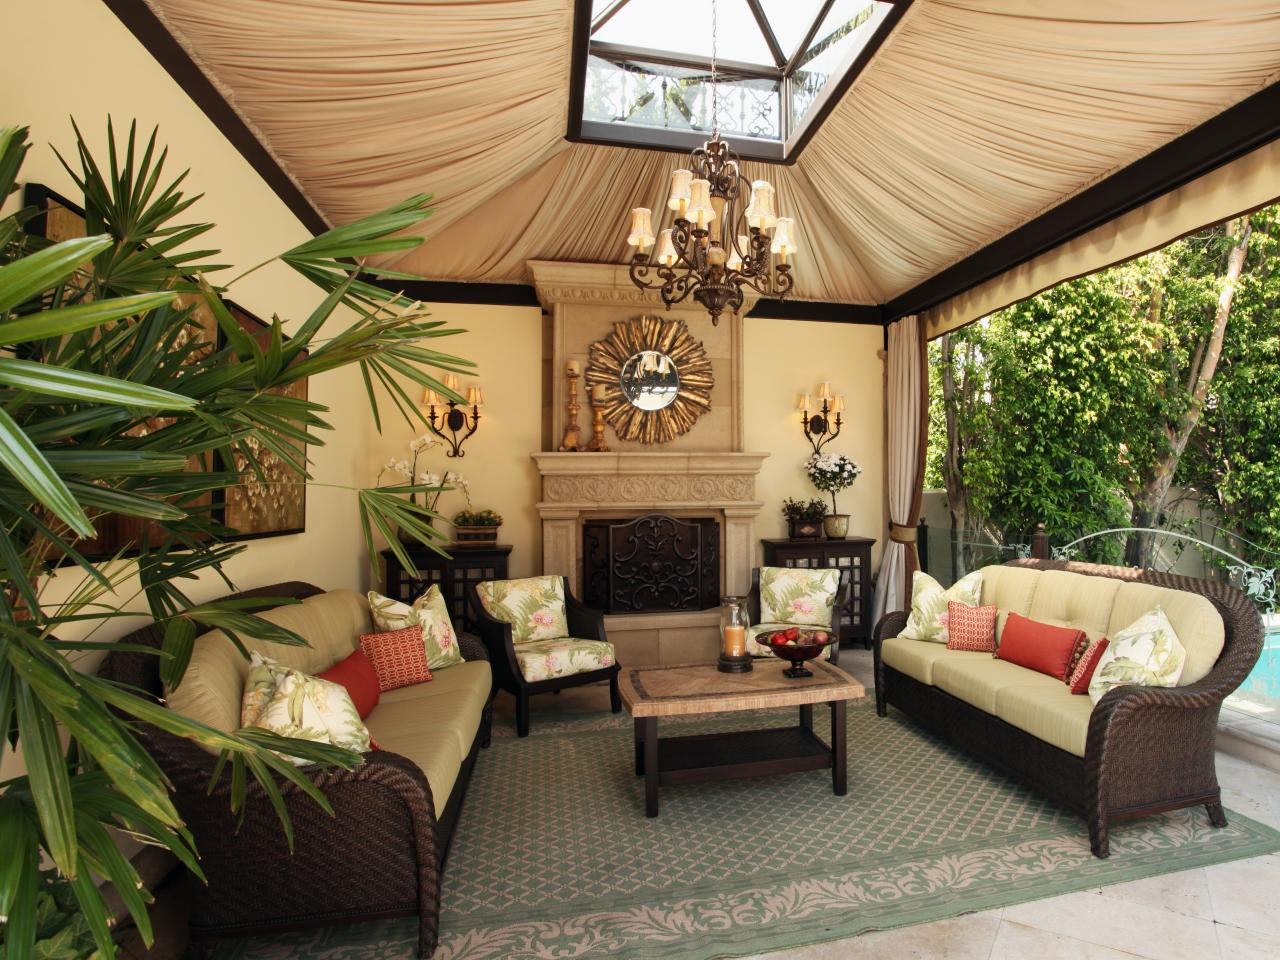 sophisticated outdoor living space this outdoor living room has an